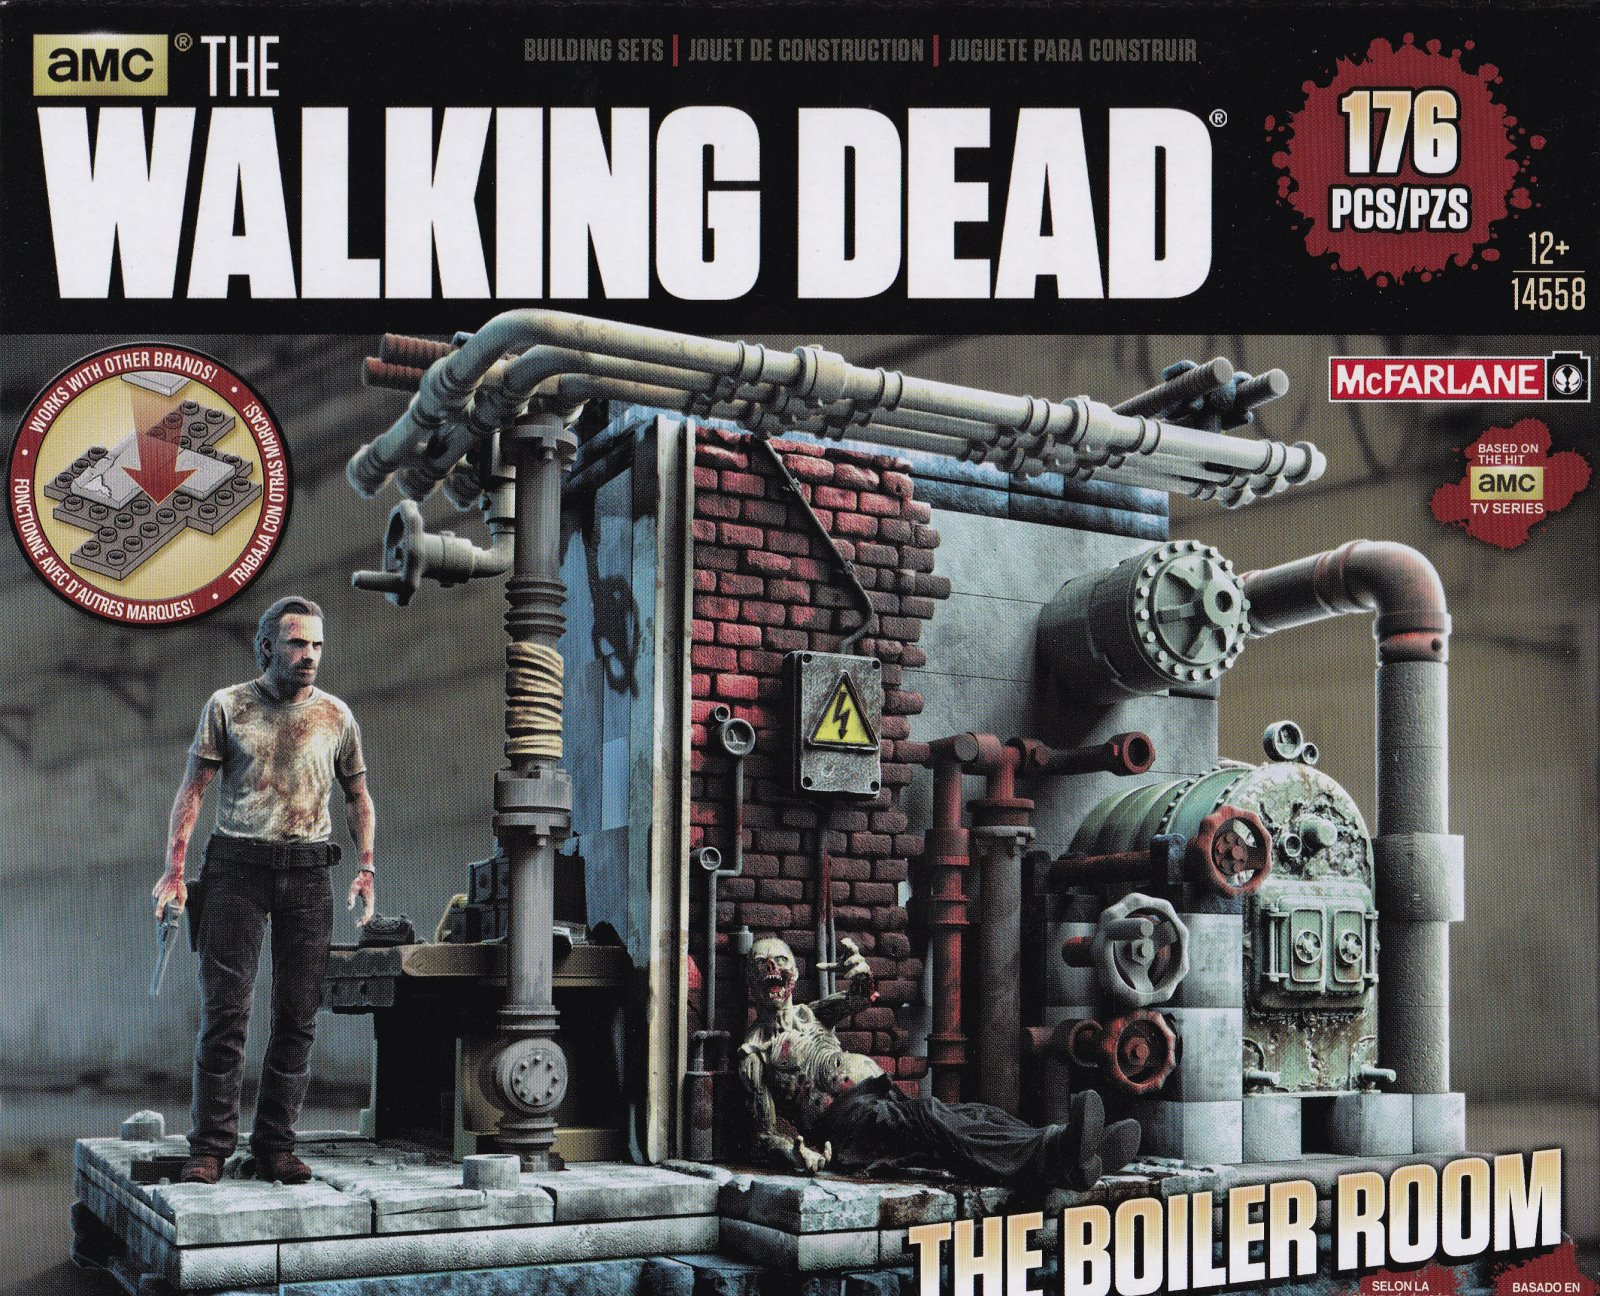 THE WALKING DEAD (TV) BUILDING SETS - The Prison Boiler Room